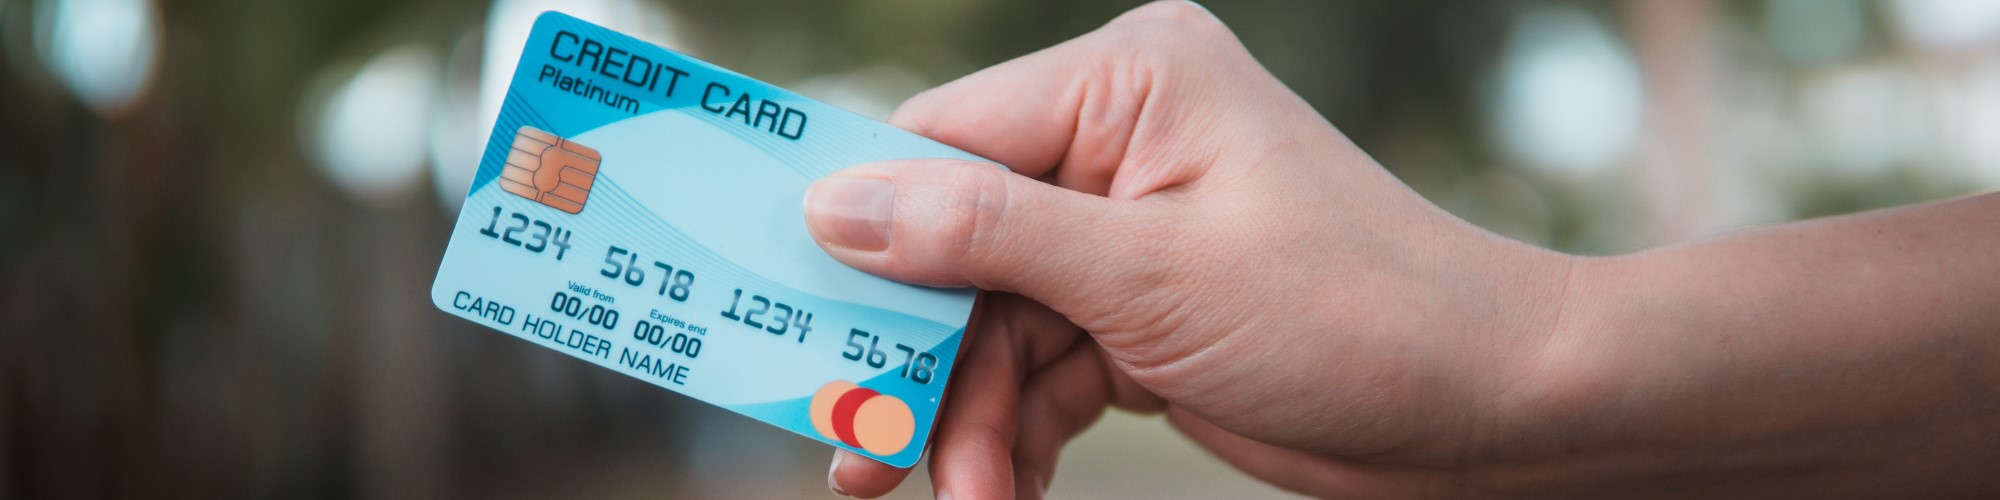 Credit Cards Not Going Away - Banner